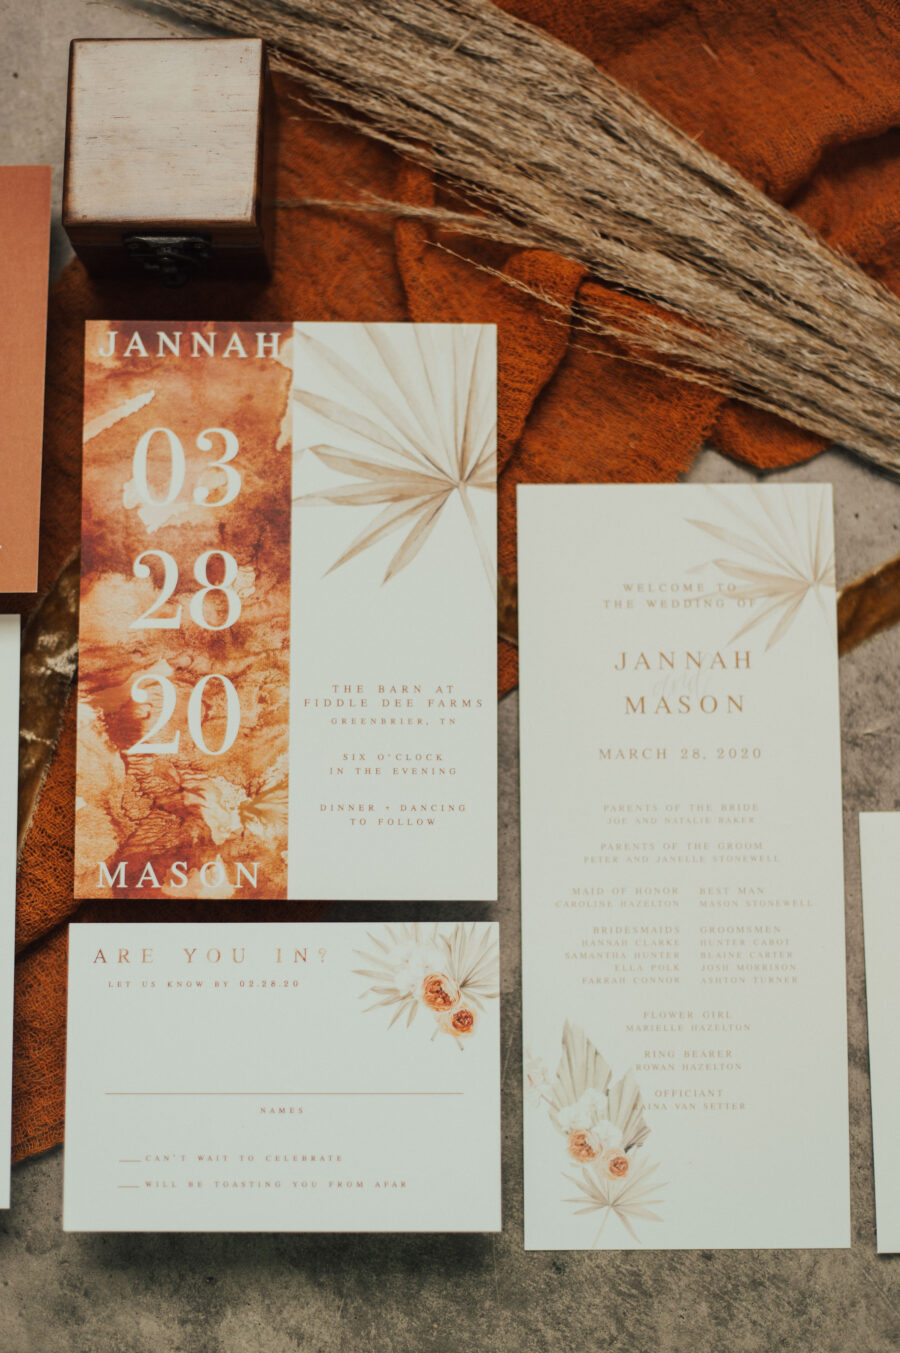 Wedding Invitation Suite: Bright Bohemian Photo Shoot from Ina J Designs